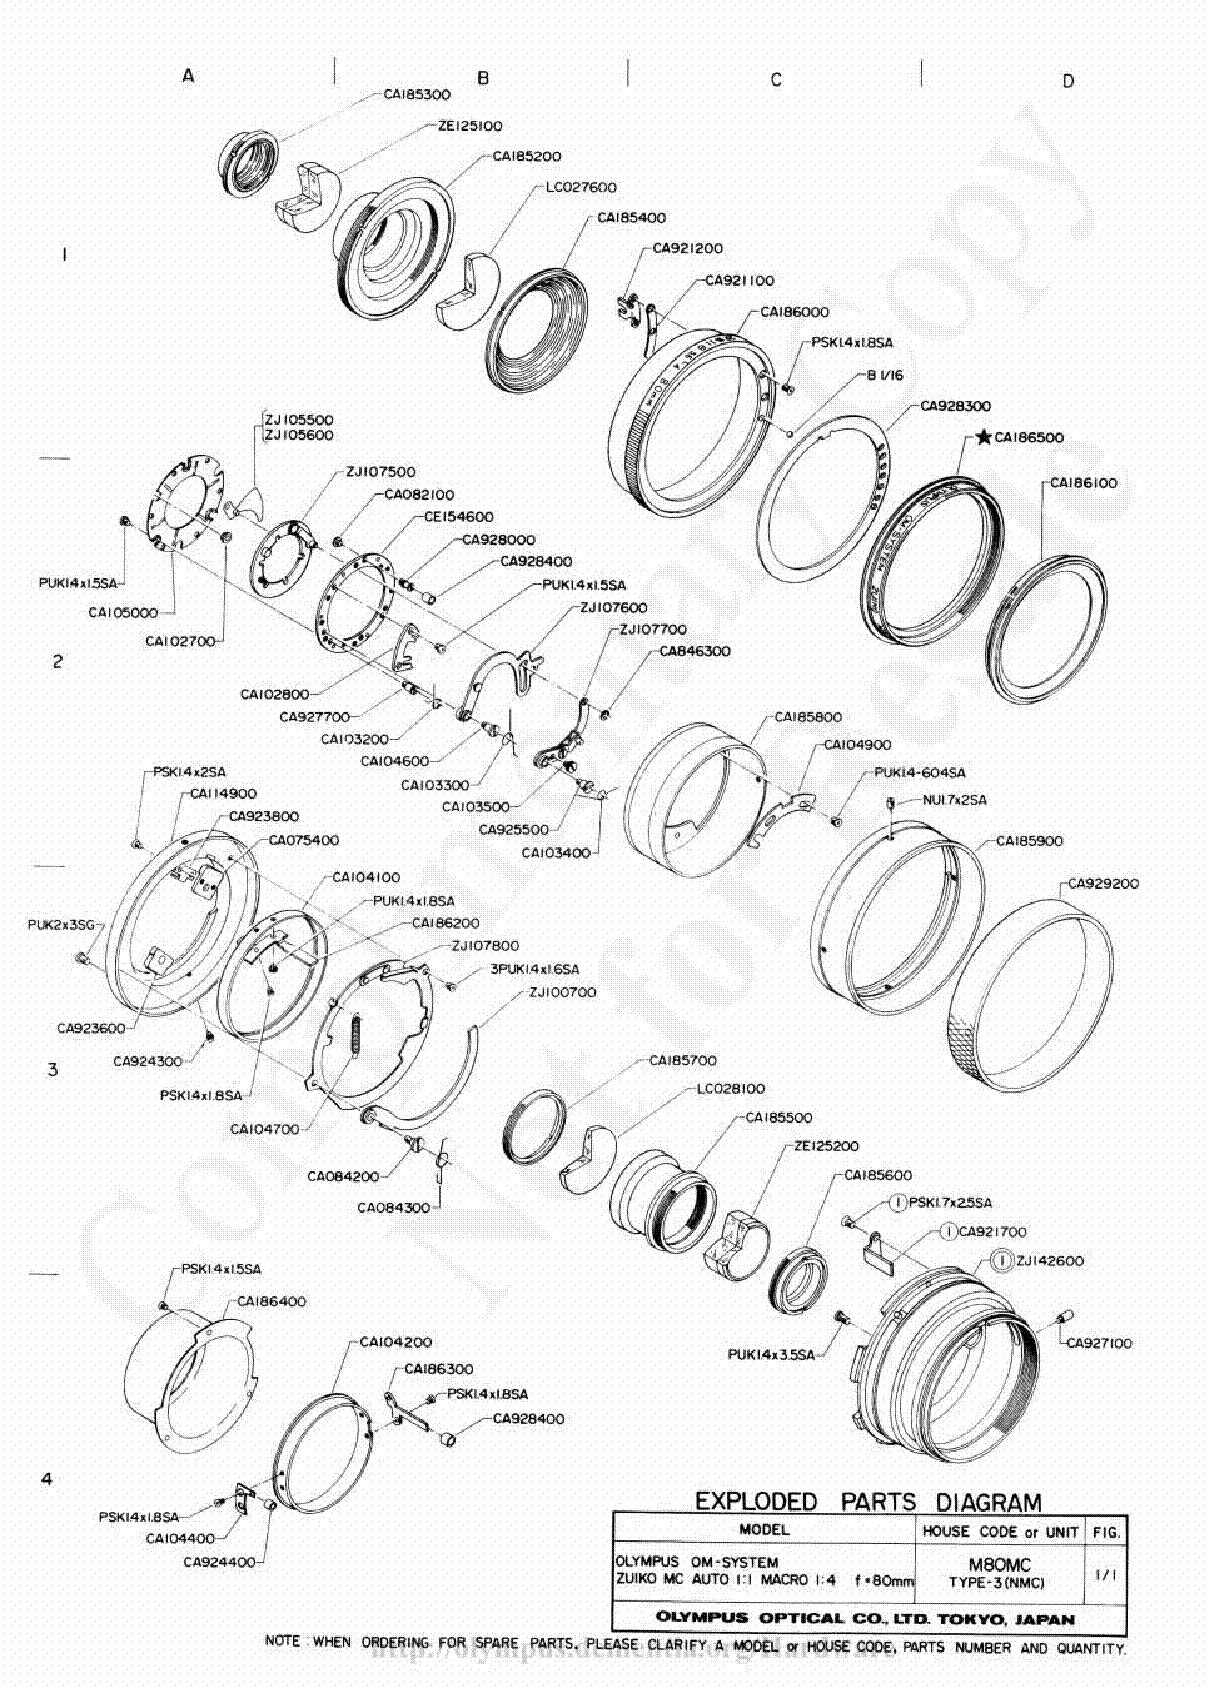 OLYMPUS 80MM F4 MACRO EXPLODED PARTS DIAGRAM Service